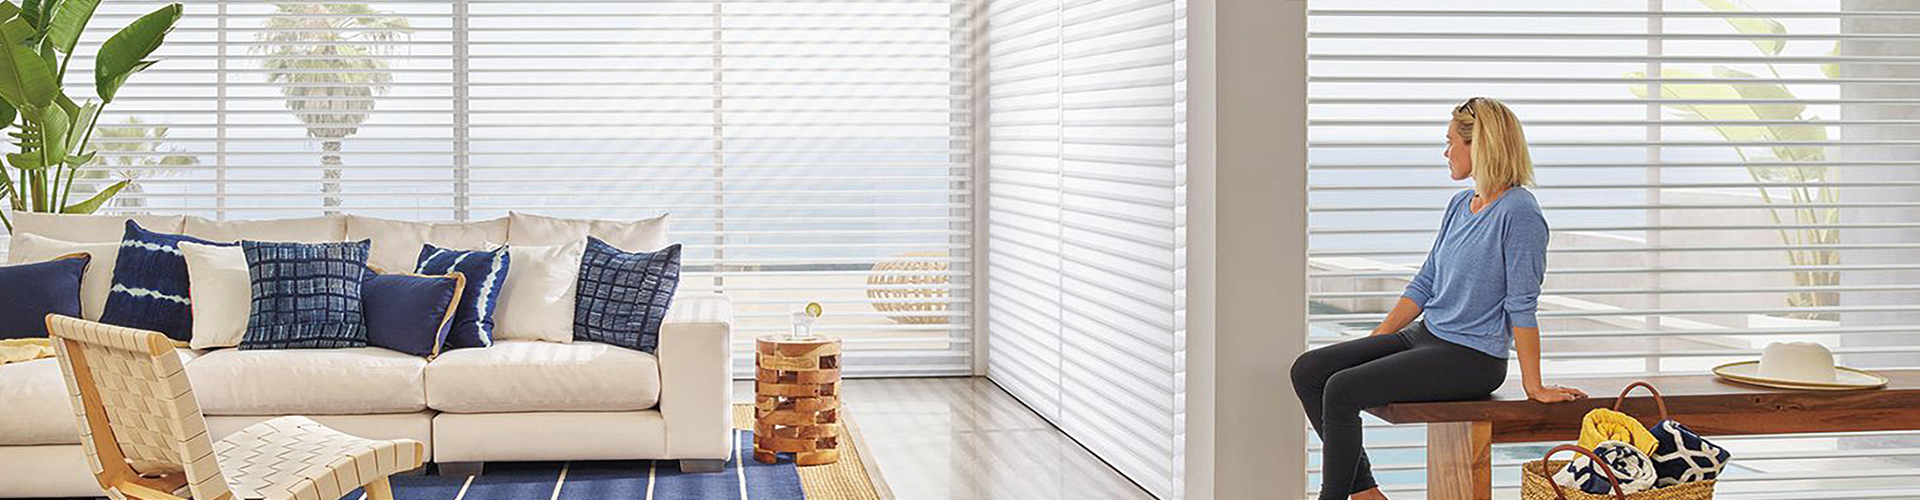 window hunter shades douglas douglass pirouette blinds before after